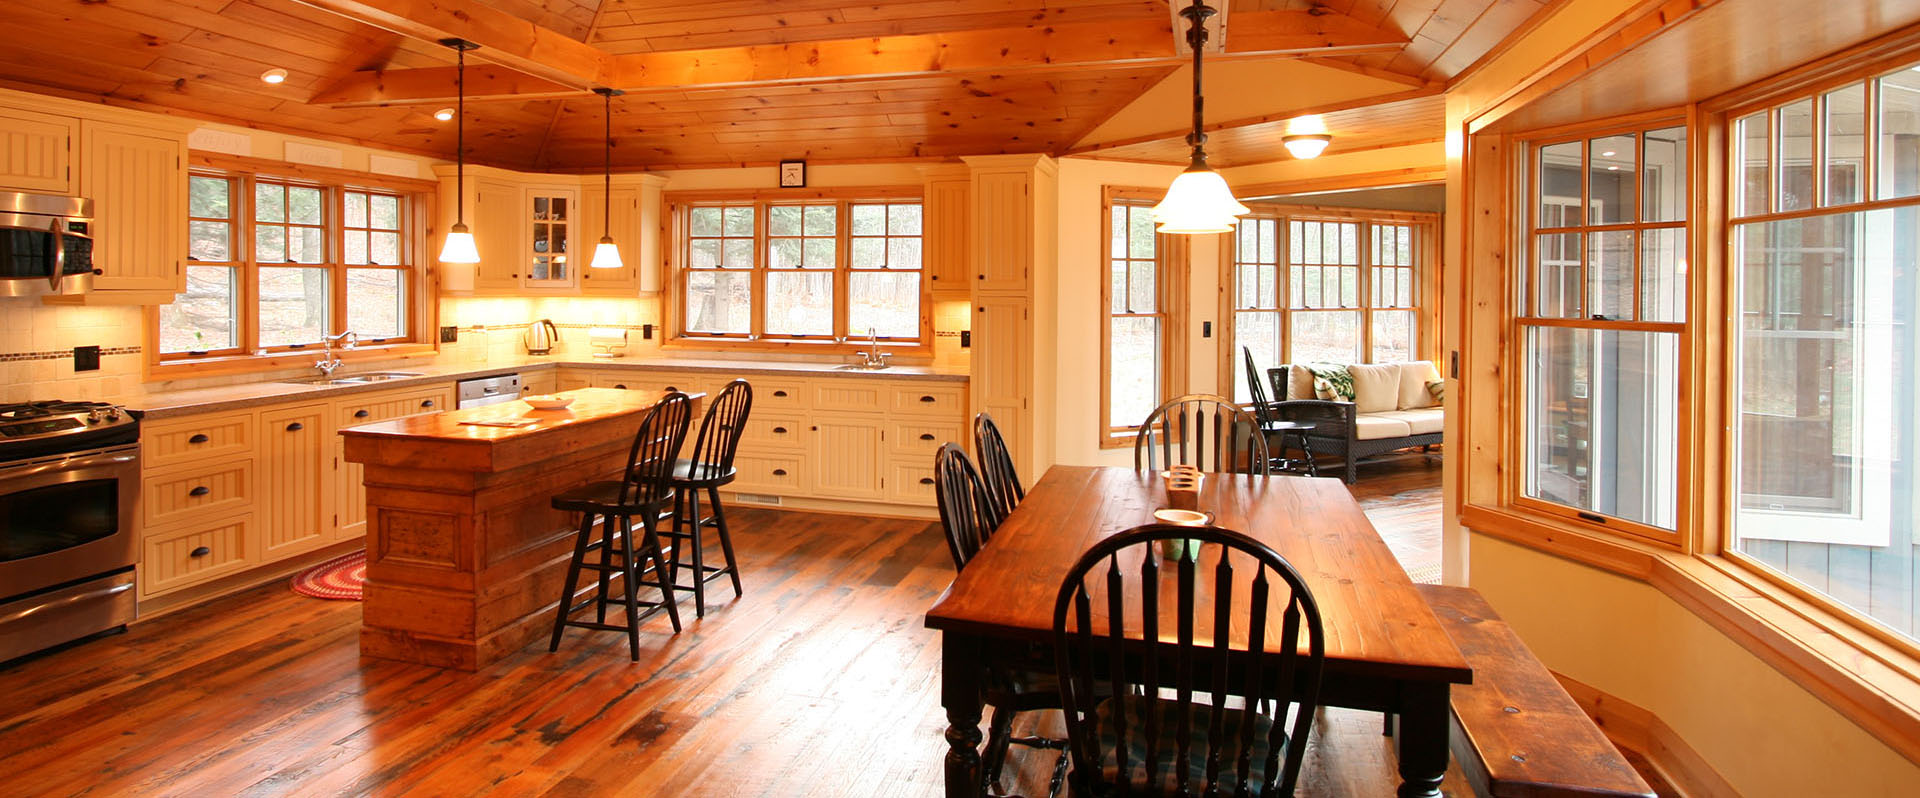 architect designed cottage - lake of bays muskoka - kitchen eating